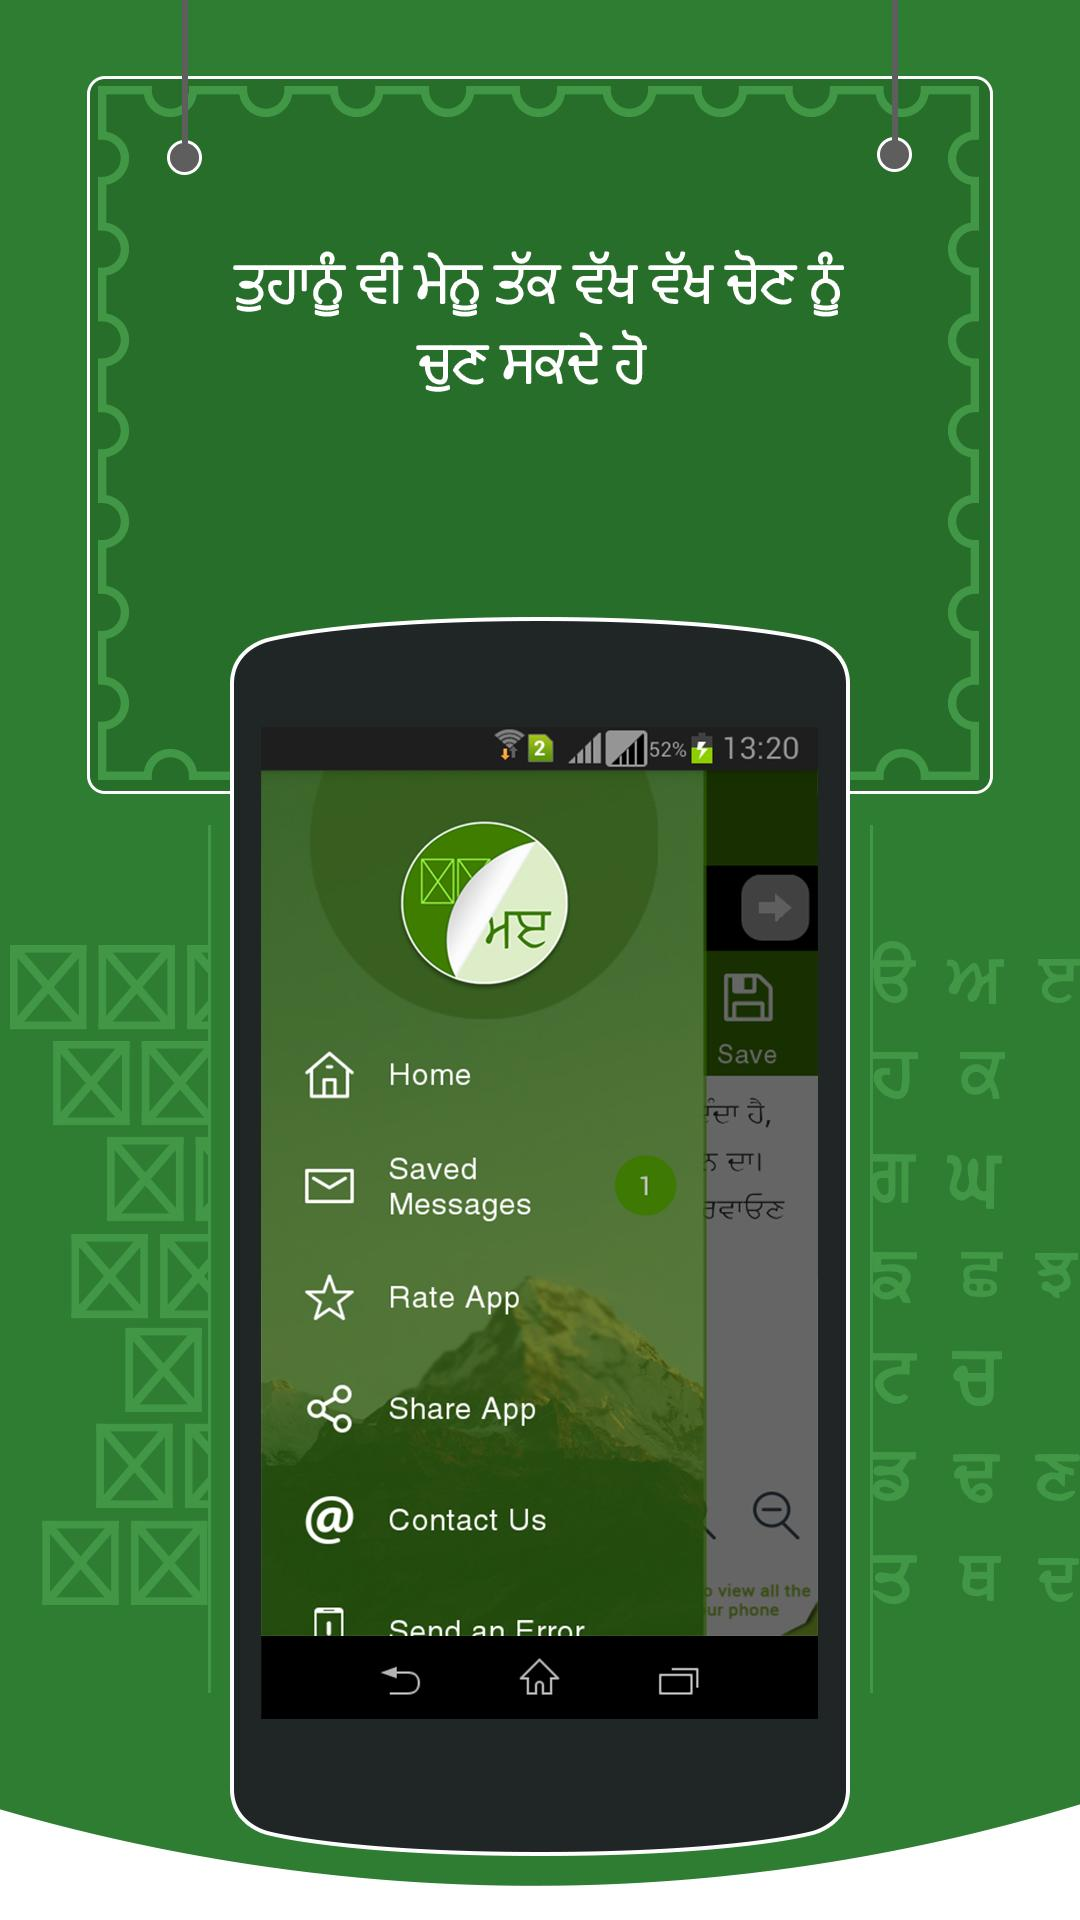 View Text in Punjabi Fonts or Language in Phone for Android - APK